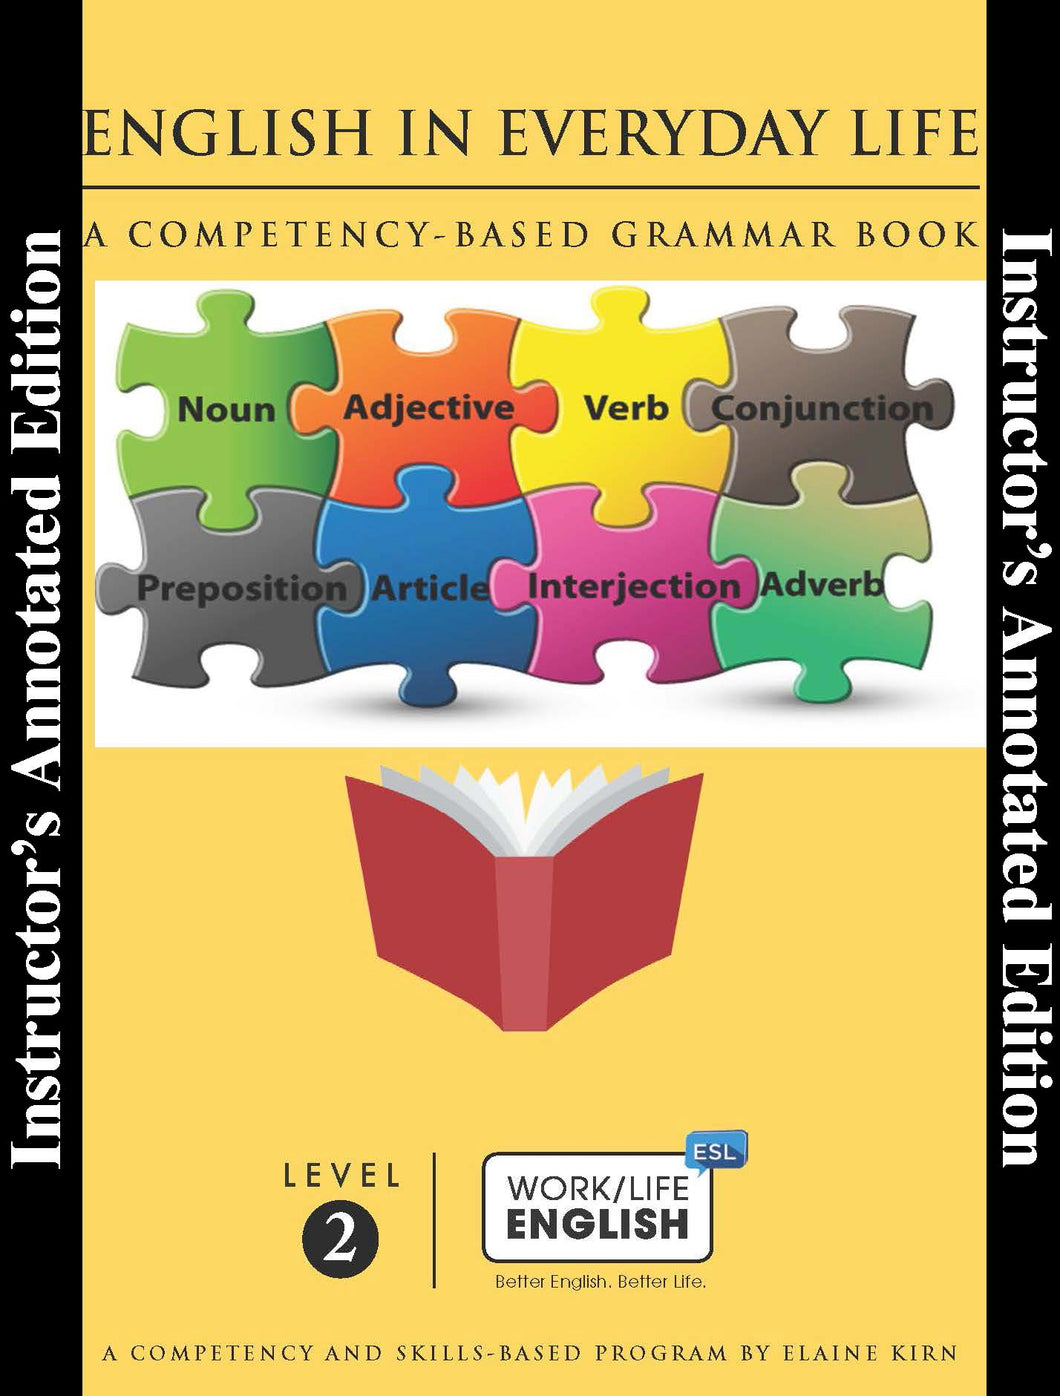 Competency-based Grammar Book